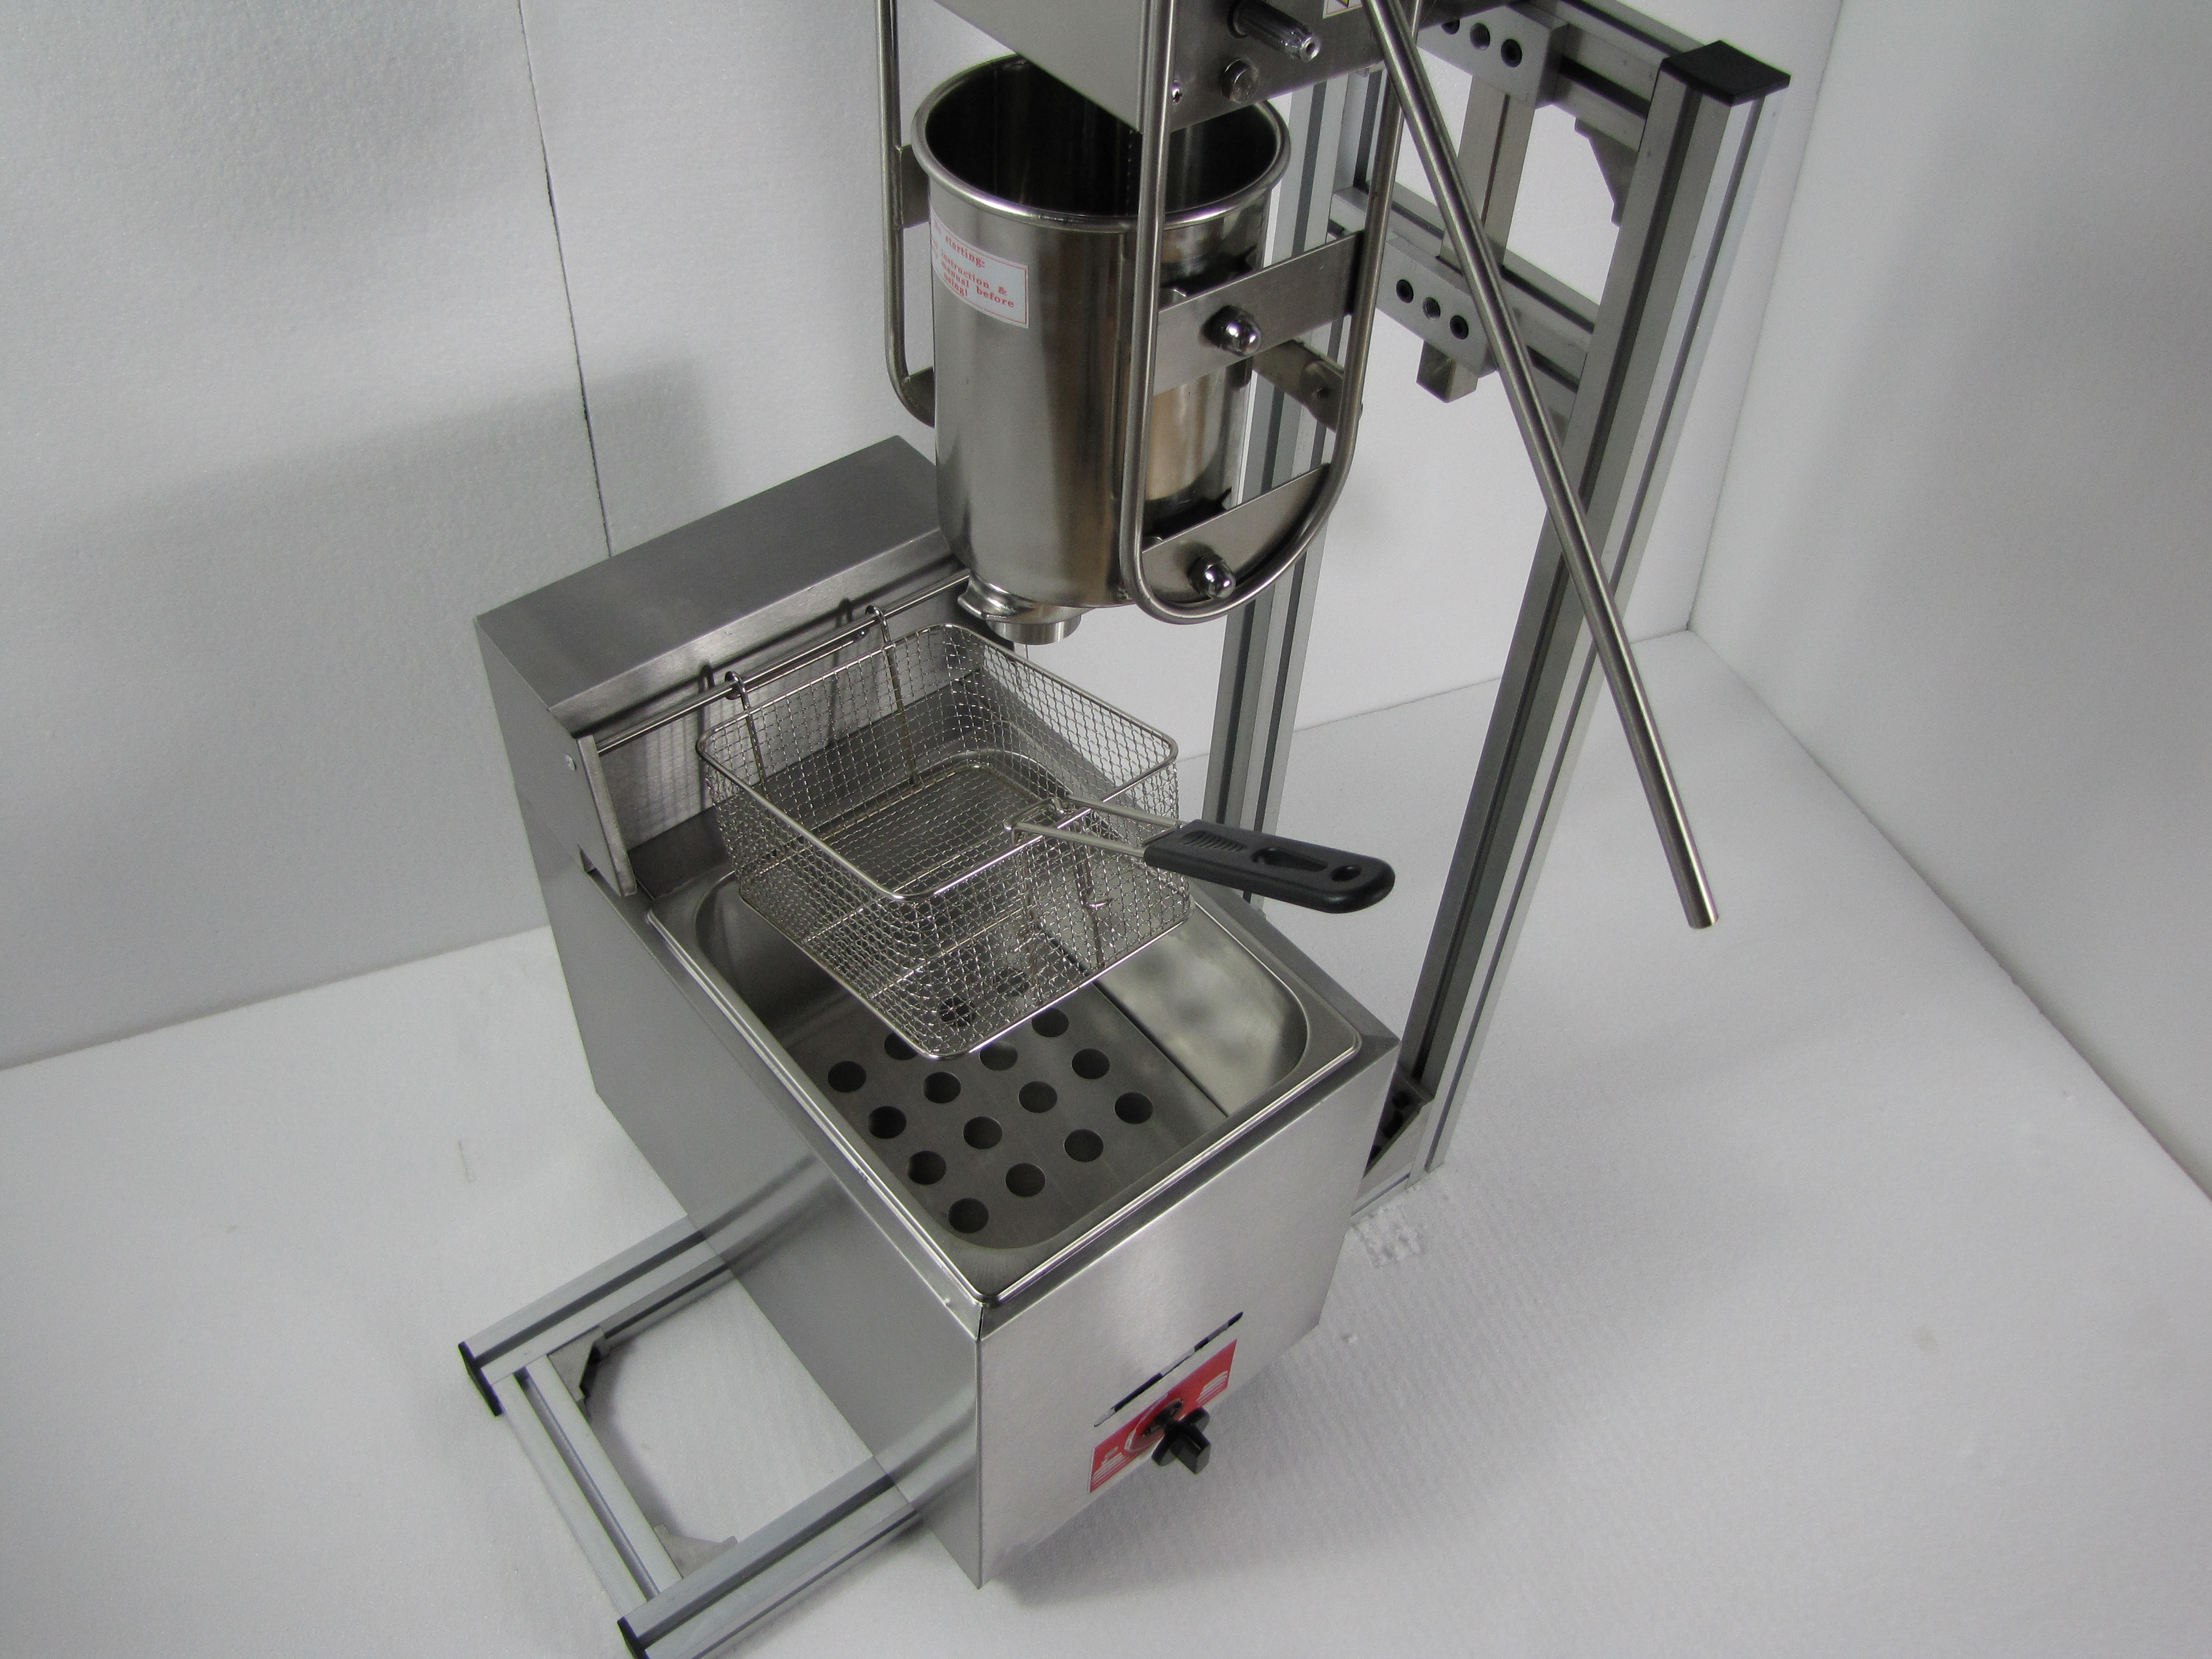 buy churro maker machine with gas deep fryer product online kuala lumpur kl malaysia on newstore. Black Bedroom Furniture Sets. Home Design Ideas